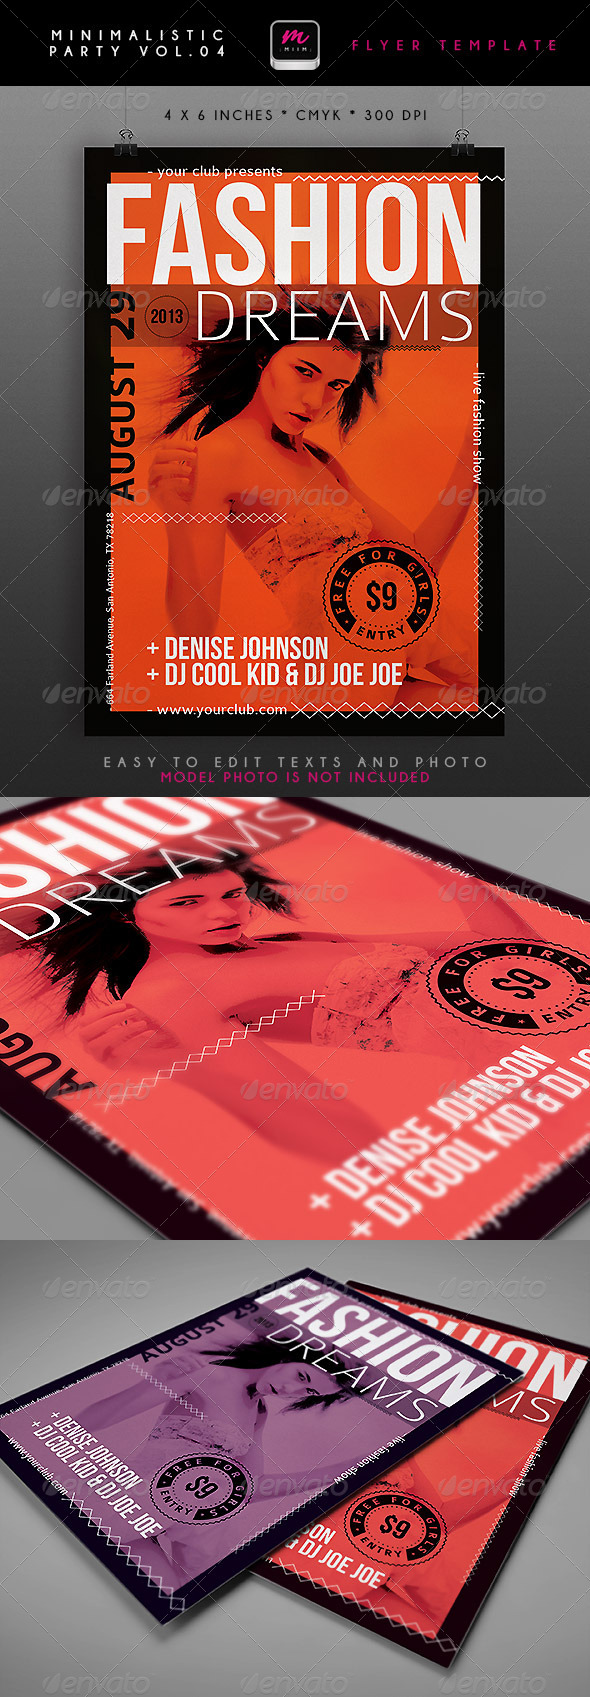 GraphicRiver Minimalistic Party Flyer 4 4833388